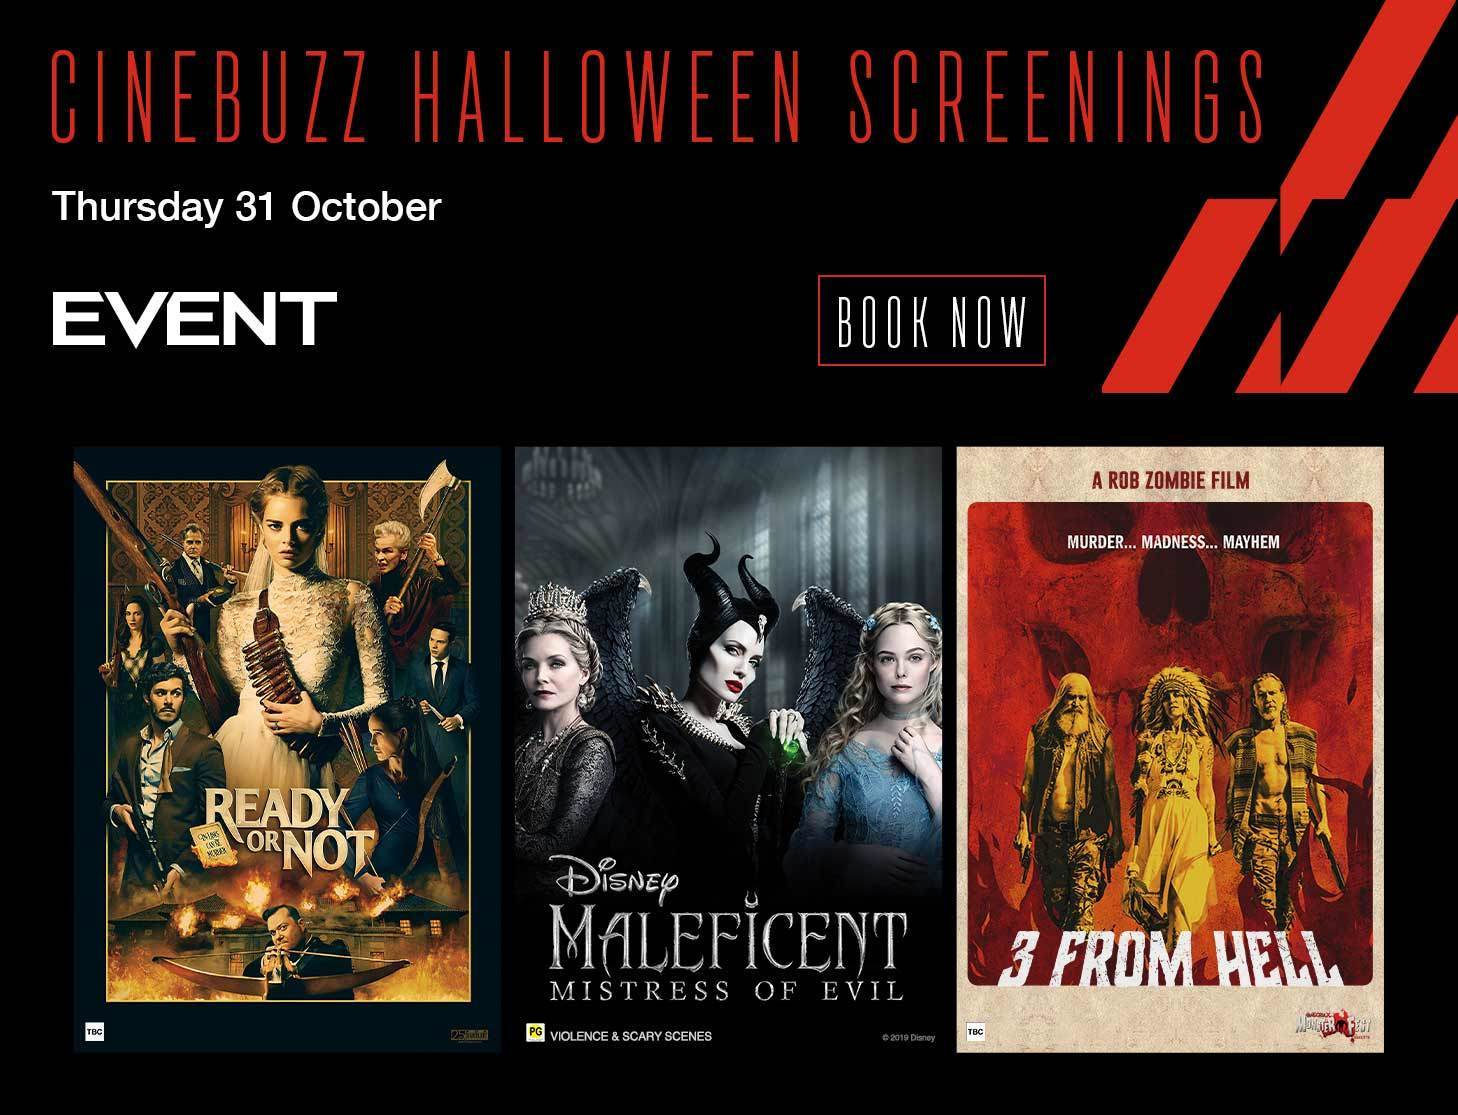 Cinebuzz Halloween Screenings Event Cinemas